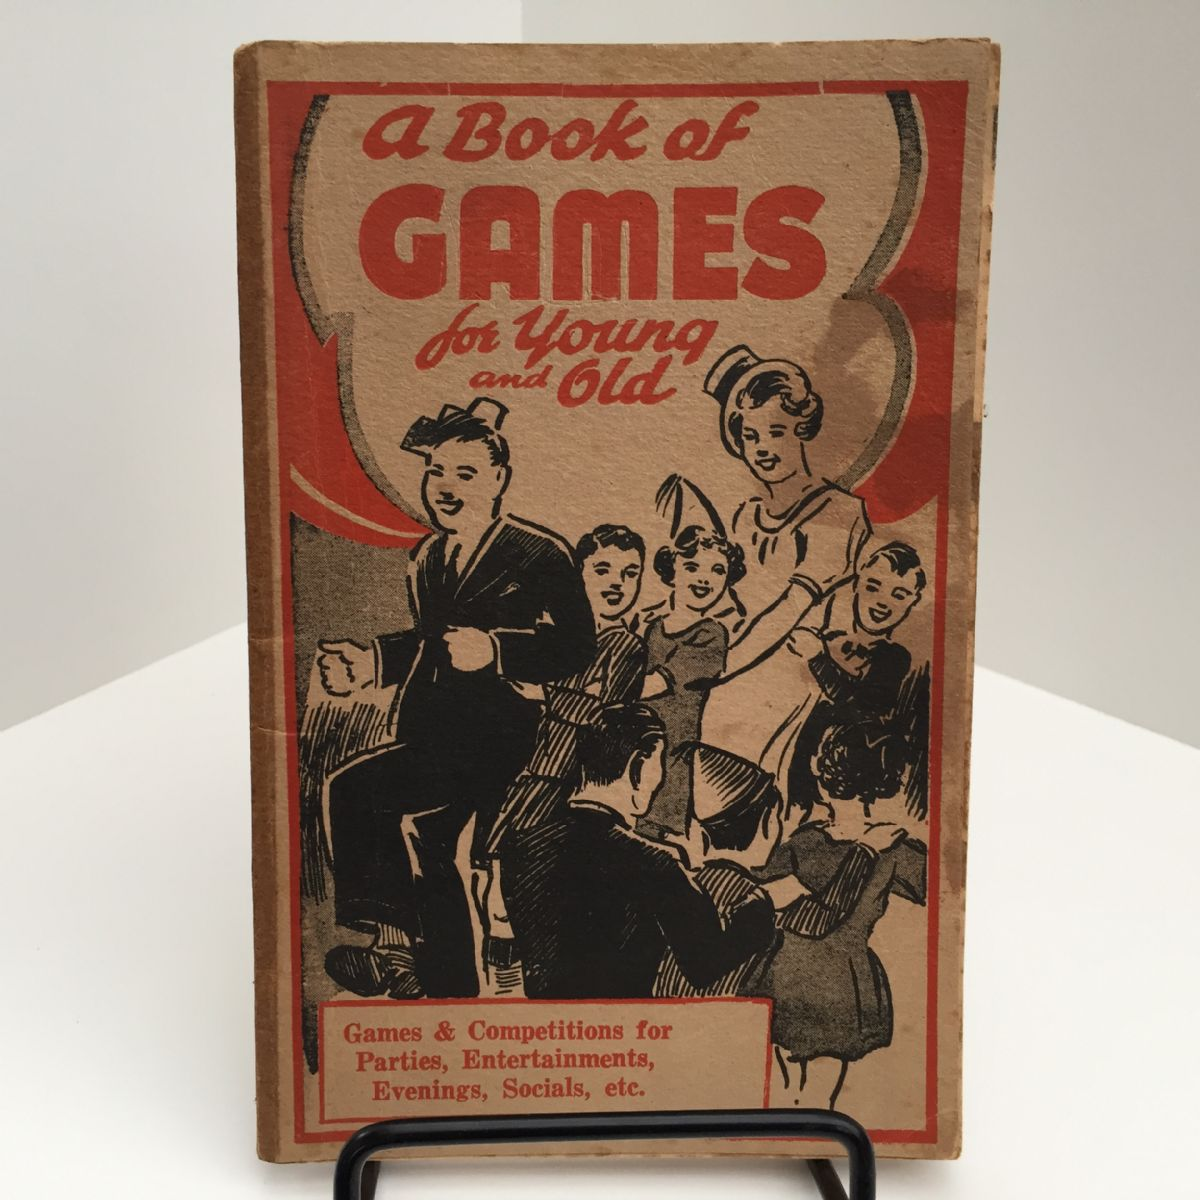 A Book of Games for Young and Old